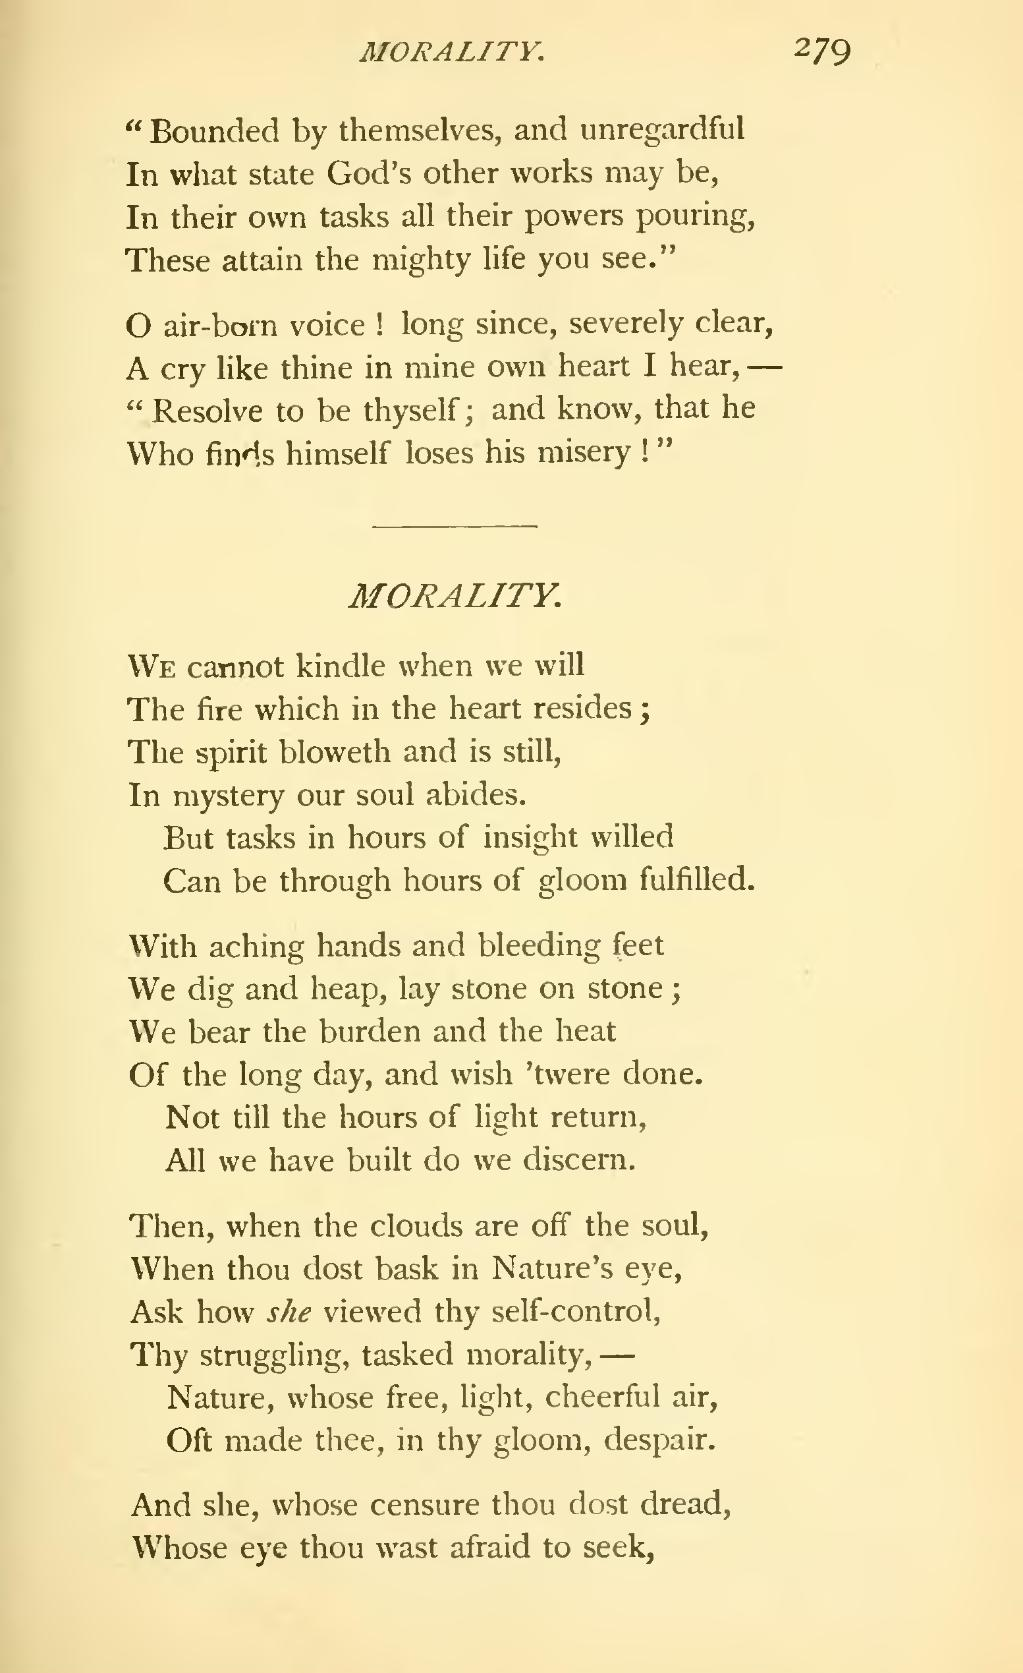 a wish by matthew arnold